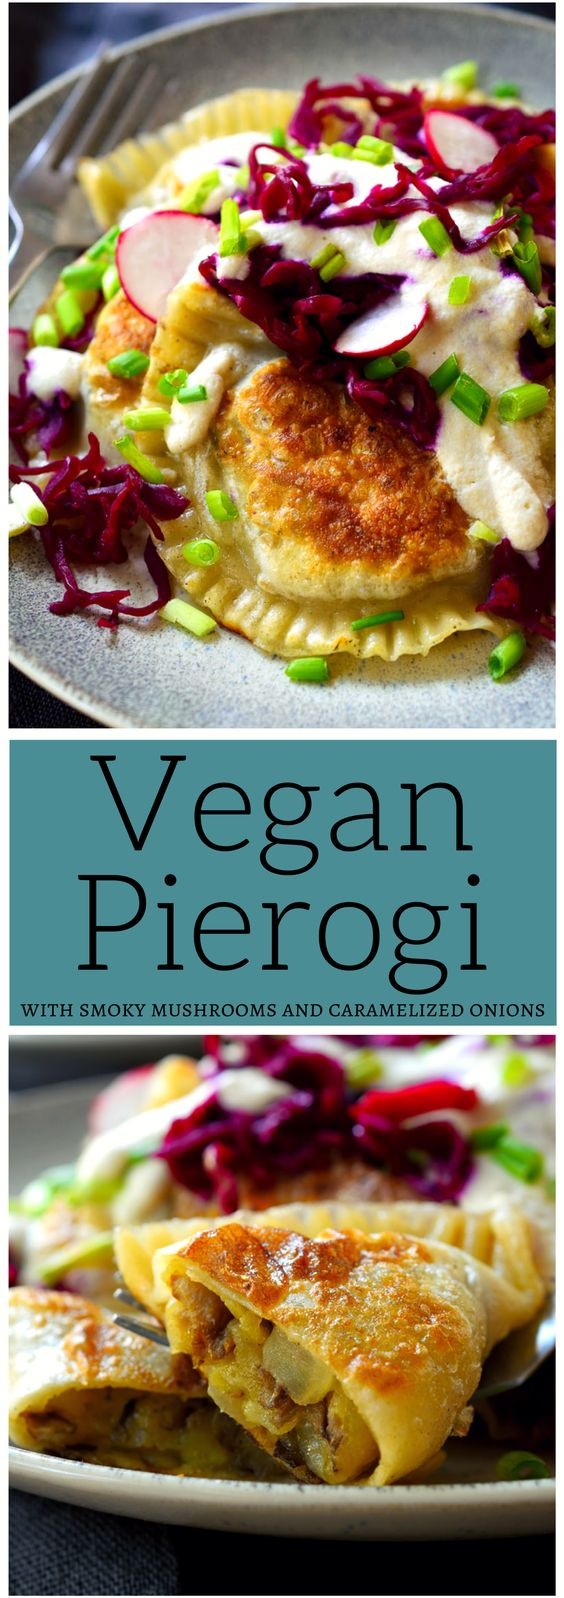 Vegan Pierogi with Smoky Mushrooms and Caramelized Onions